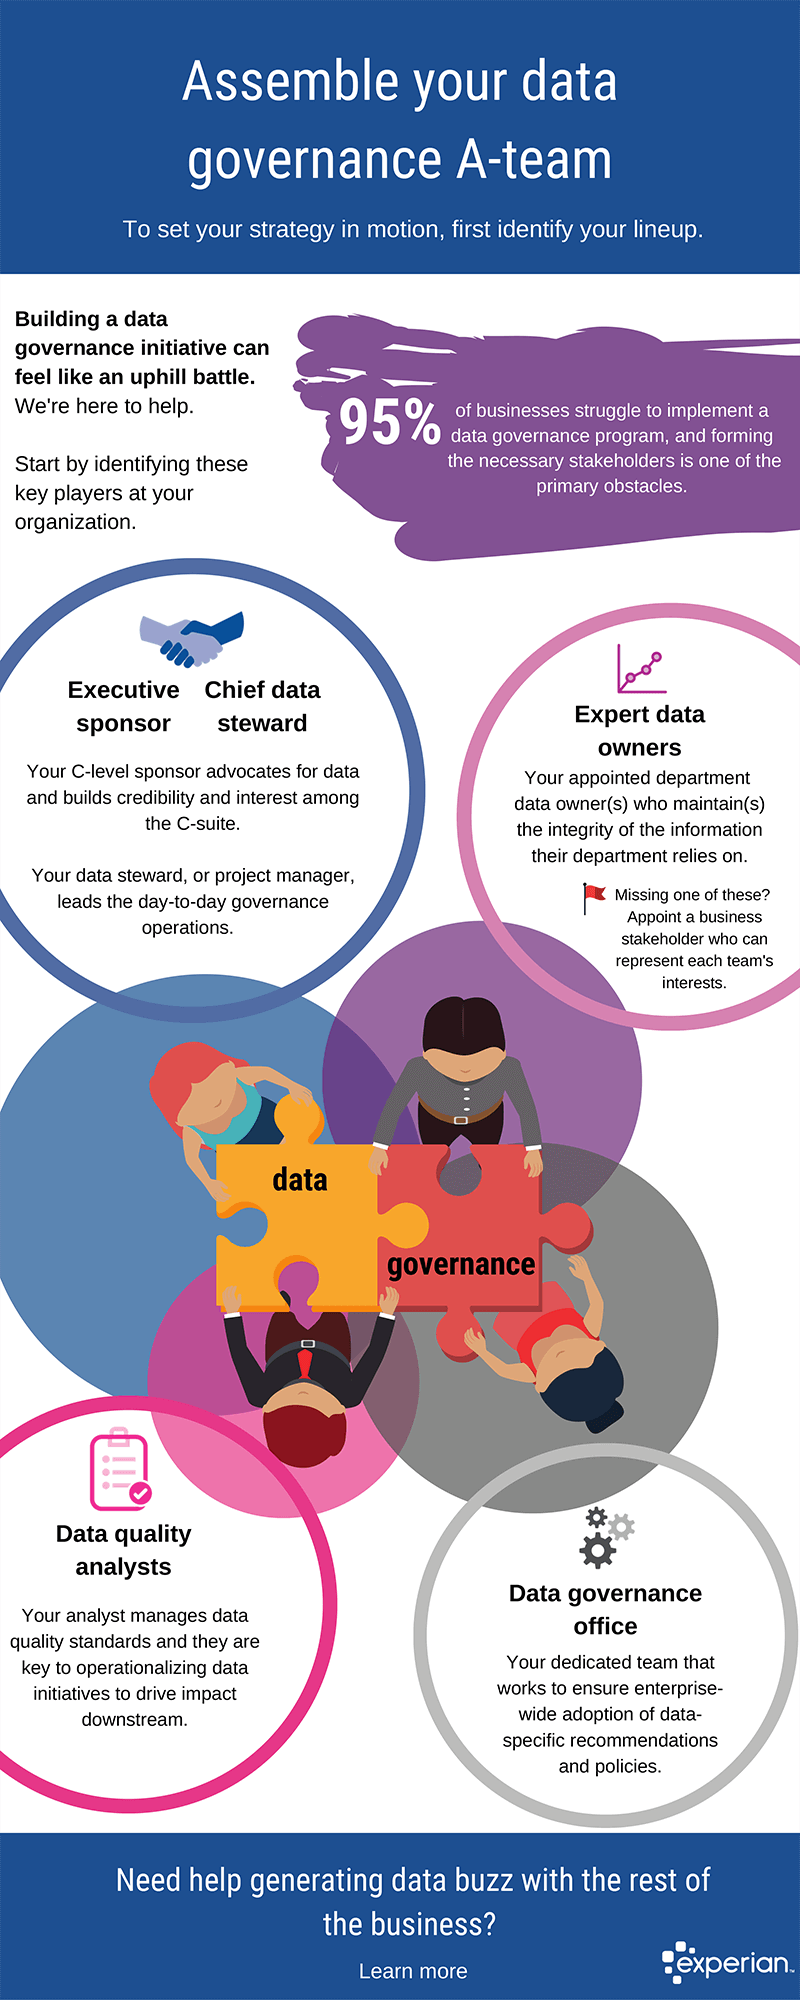 Assemble your data governance a-team